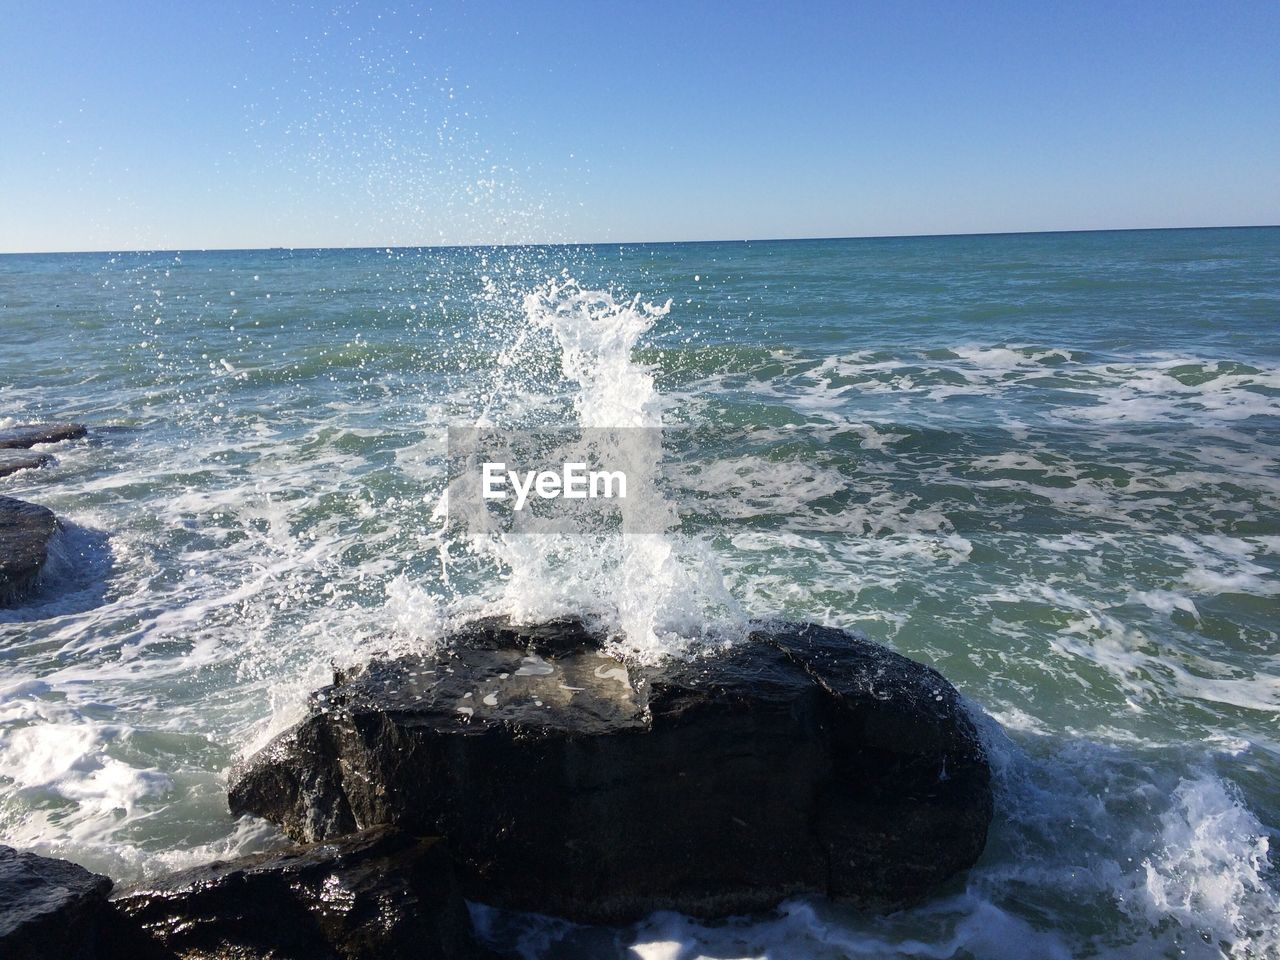 sea, water, nature, clear sky, beauty in nature, horizon over water, scenics, wave, motion, outdoors, no people, day, splashing, tranquility, tranquil scene, blue, sky, power in nature, force